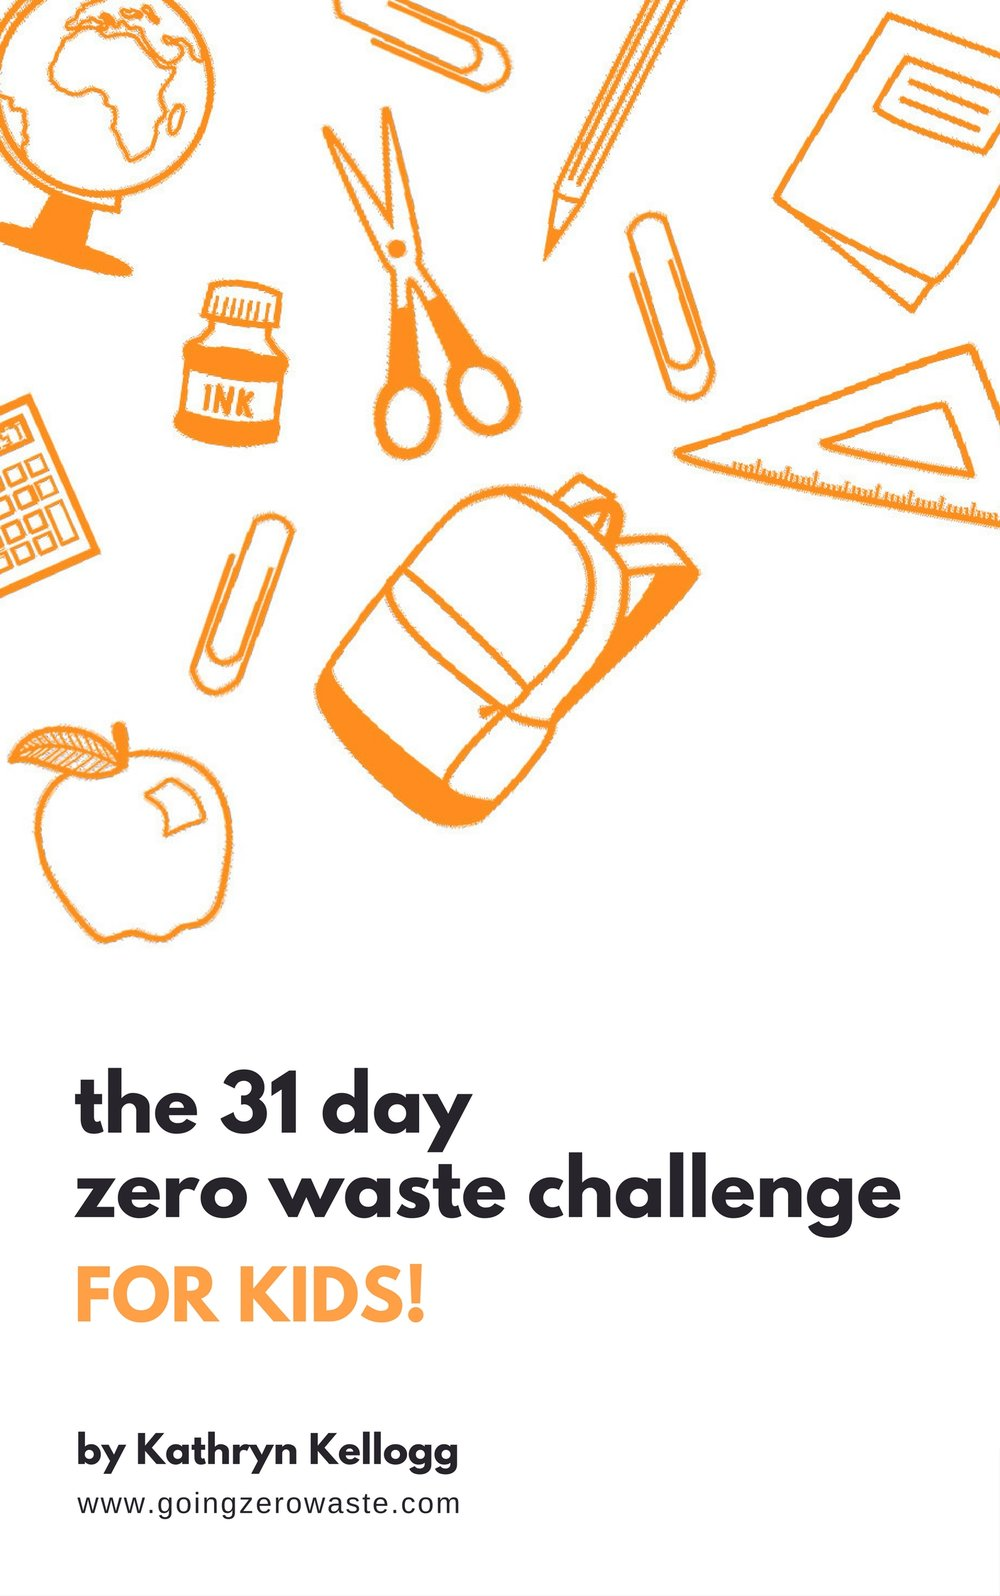 The 31 Day Zero Waste Challenge for Kids! from www.goingzerowaste.com